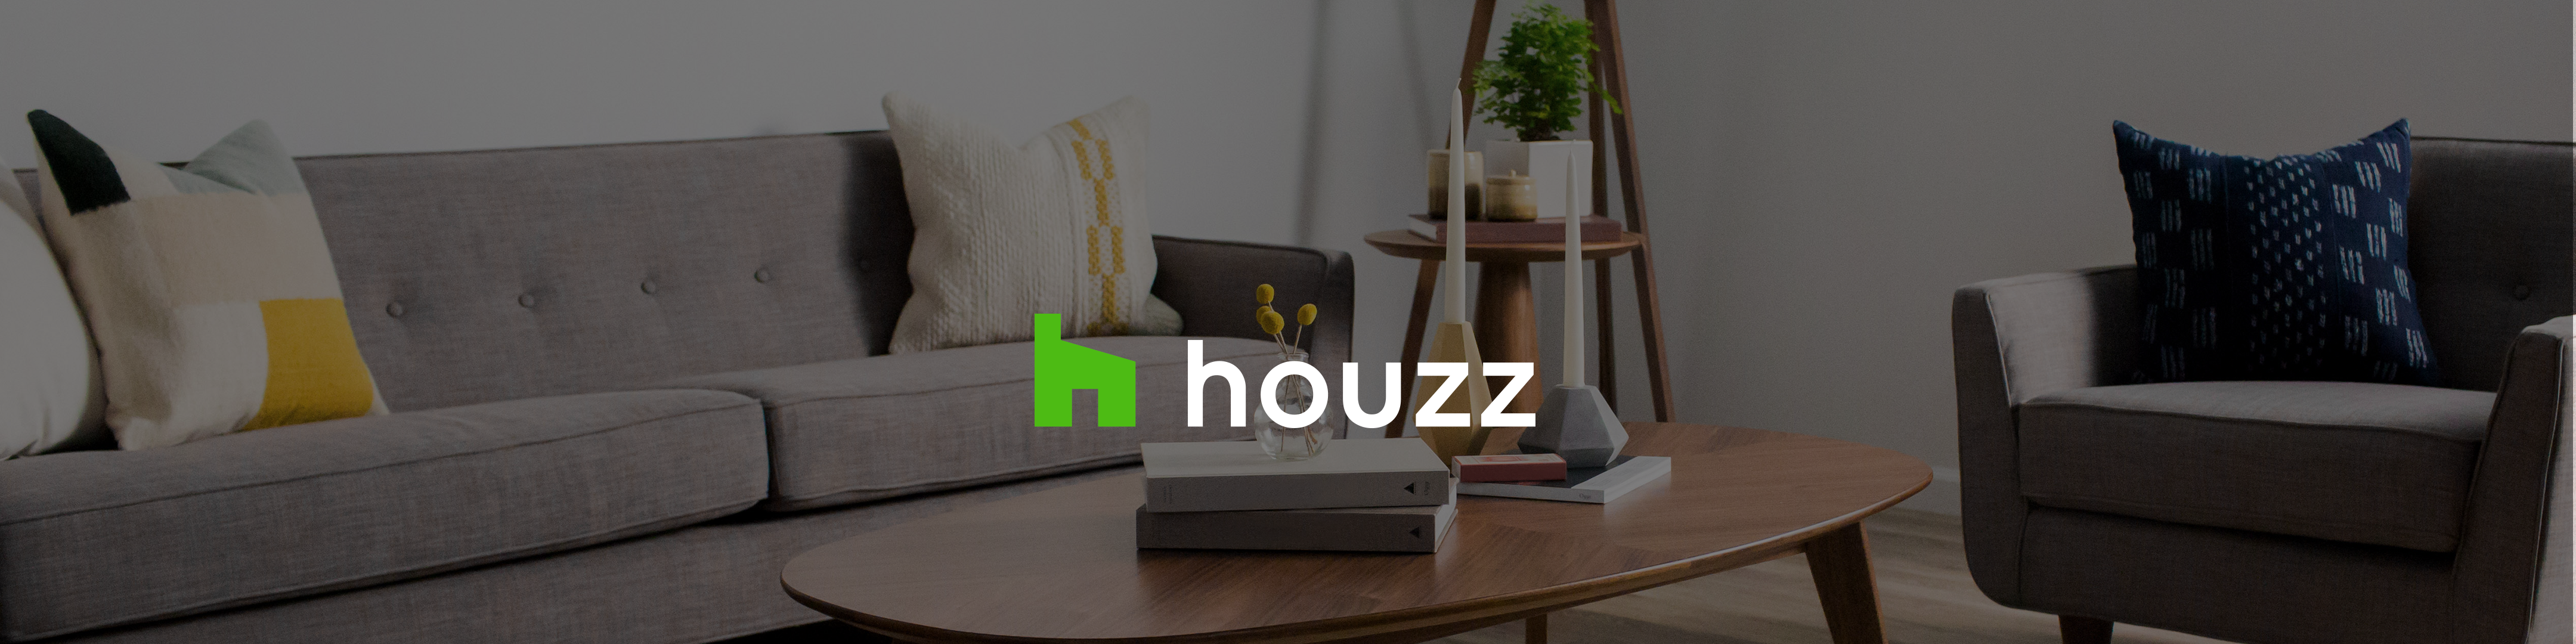 Houzz Home Design & Renovation - Revenue & Download estimates